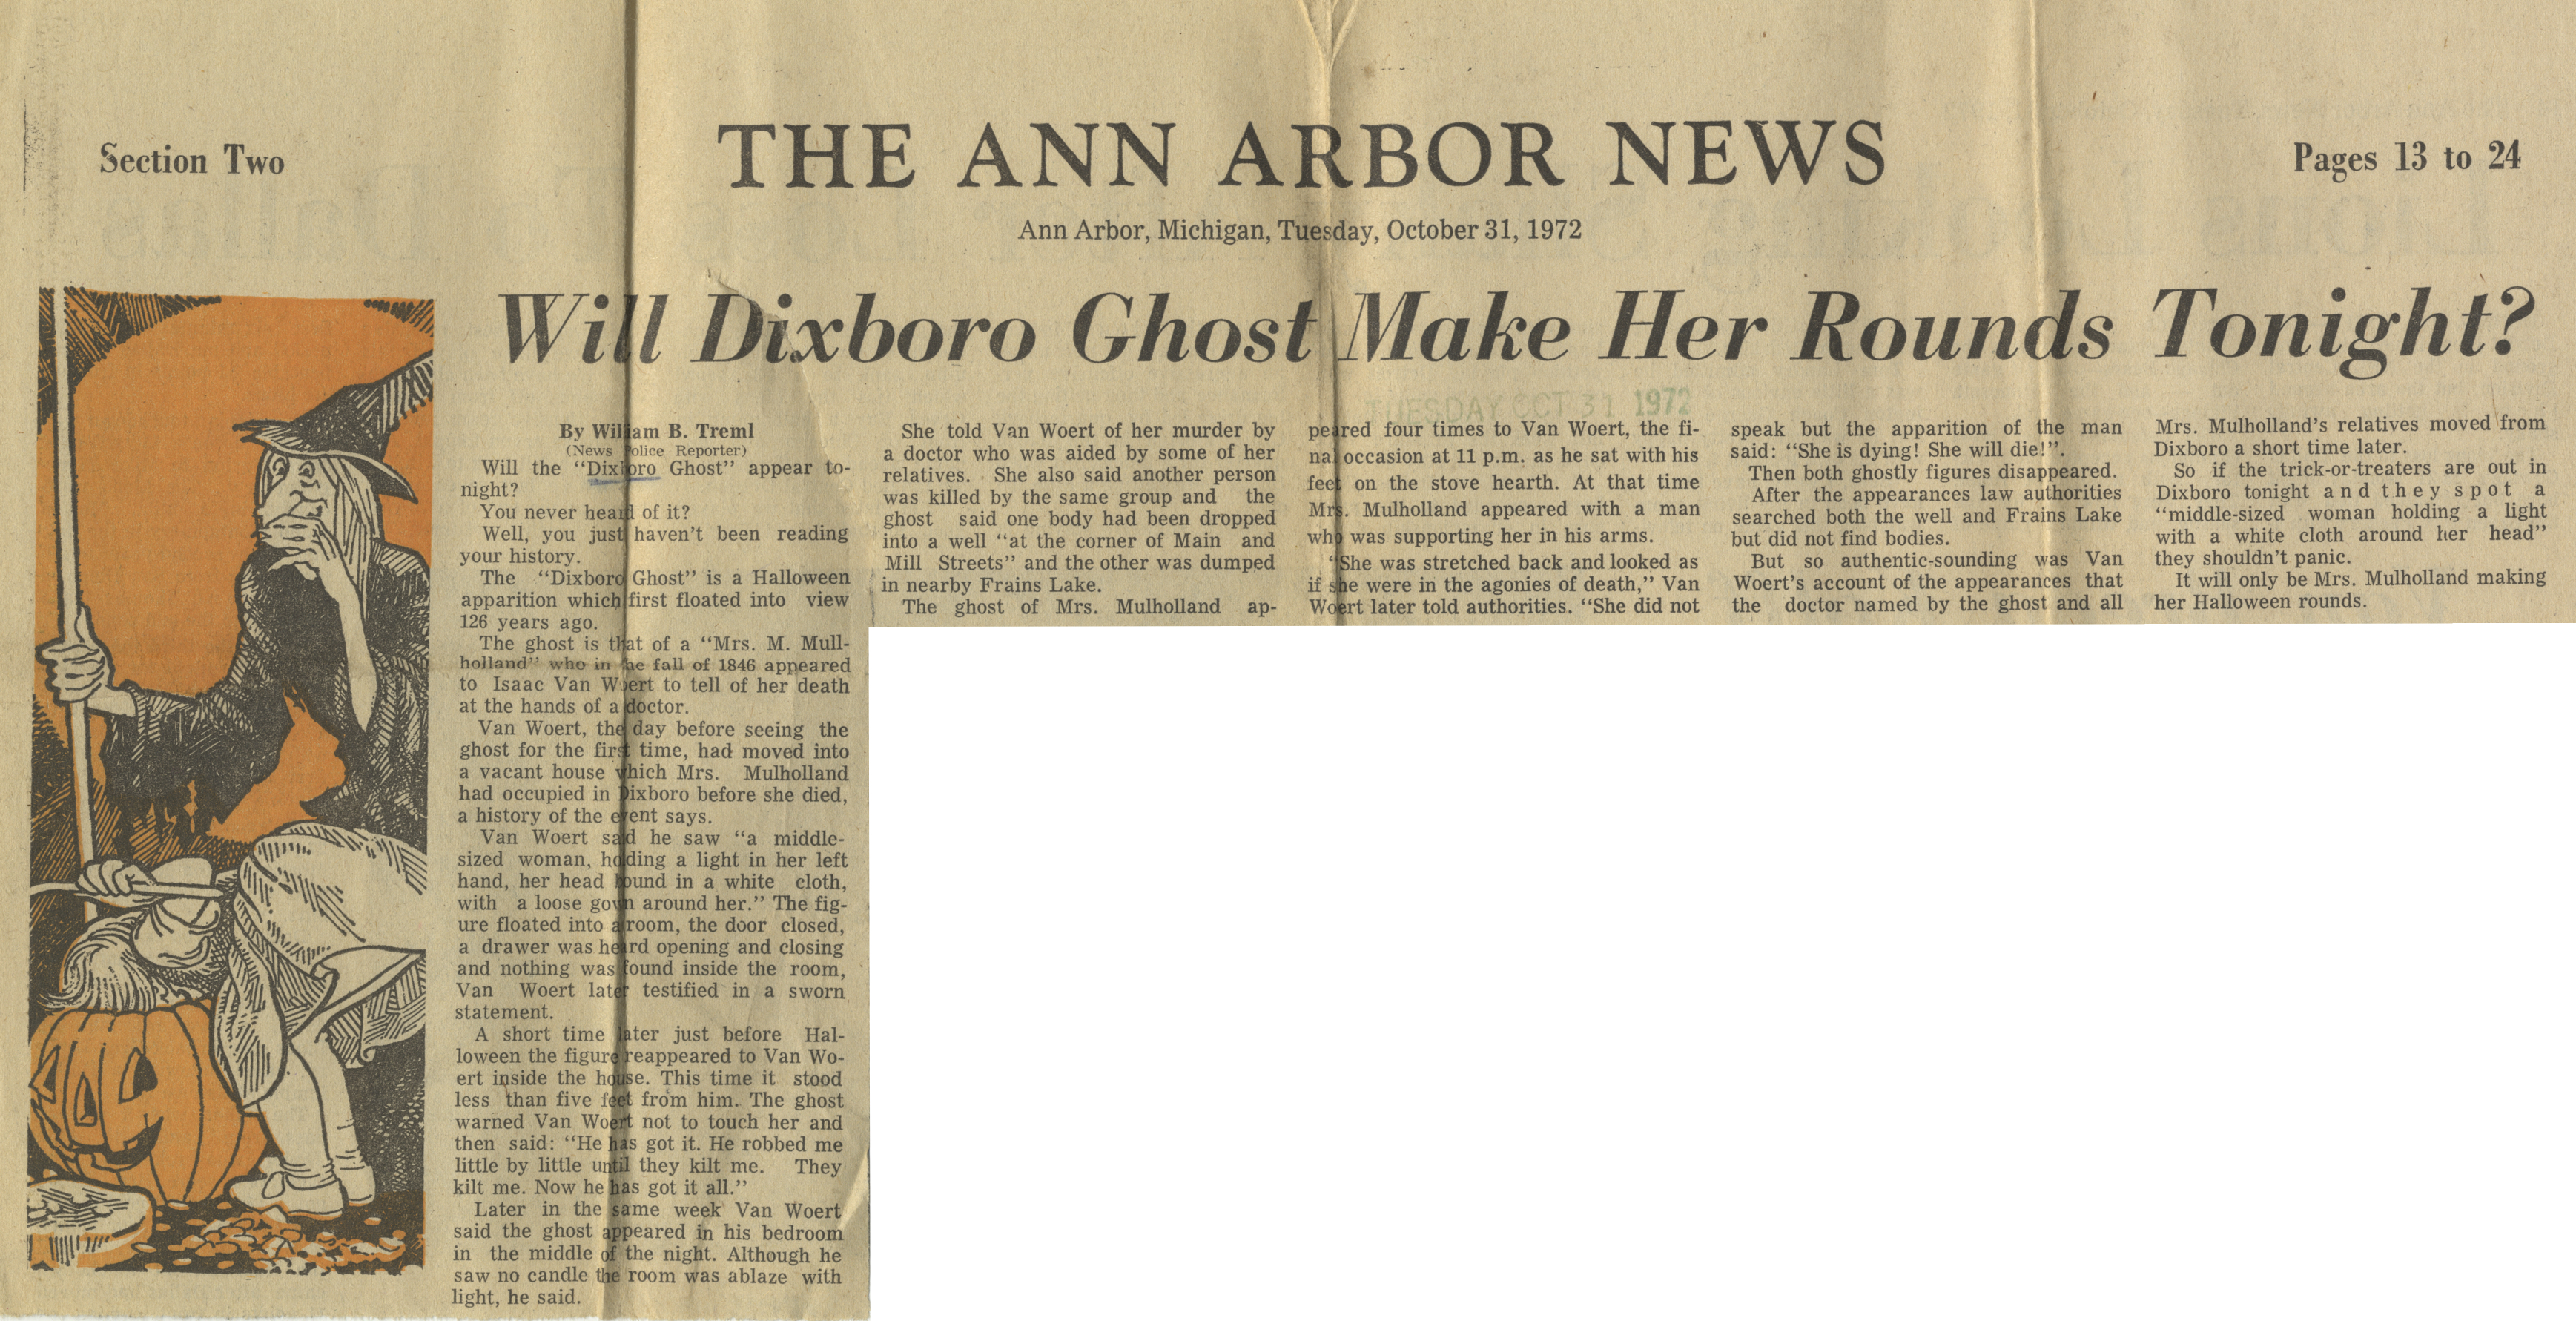 Will Dixboro Ghost Make Her Rounds Tonight? image